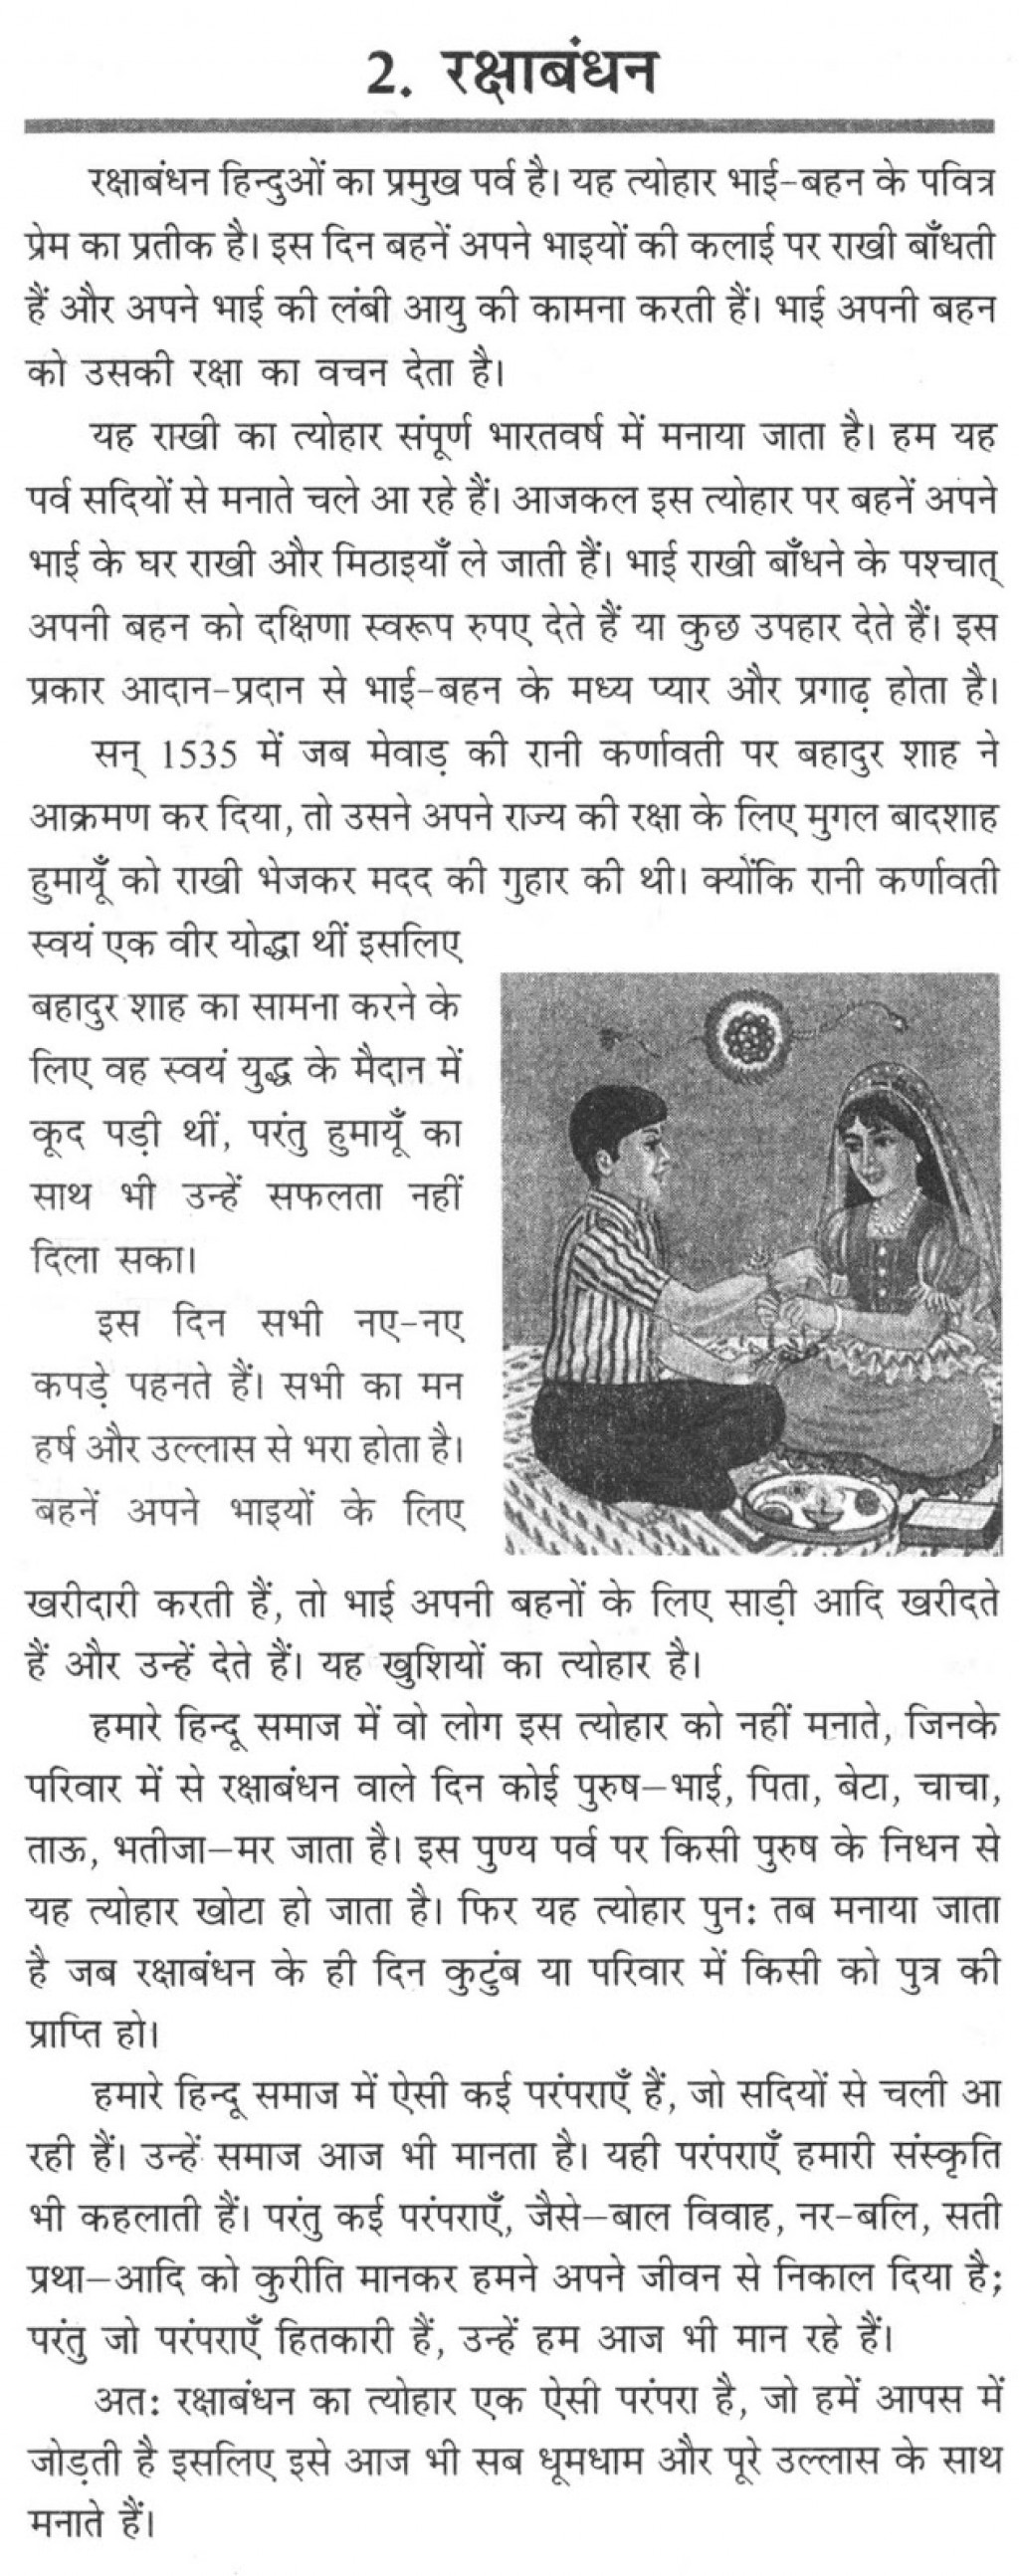 015 Raksha20bandhan20essay20in20hindi202016 Essay Example Good Habits In Exceptional Hindi And Bad Healthy Eating Large